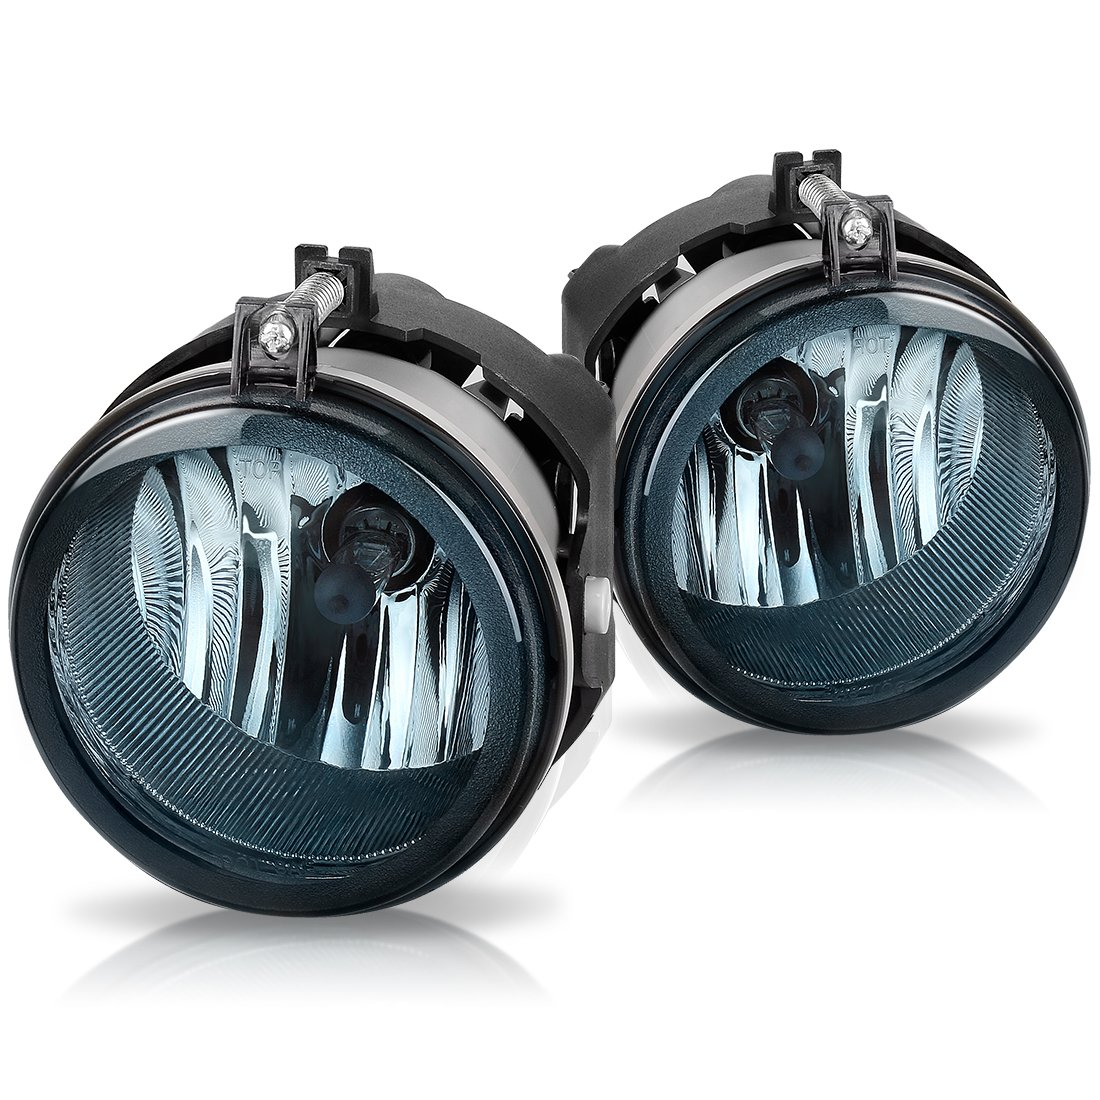 Fog Lights For Dodge Caravan Charger Challenger Caliber Mopar Jeep Off Road Driving Wiring Kit Compass Patriot Chrysler Pacifica Sebring Oe Style Smoke Lens W Bulbs Automotive